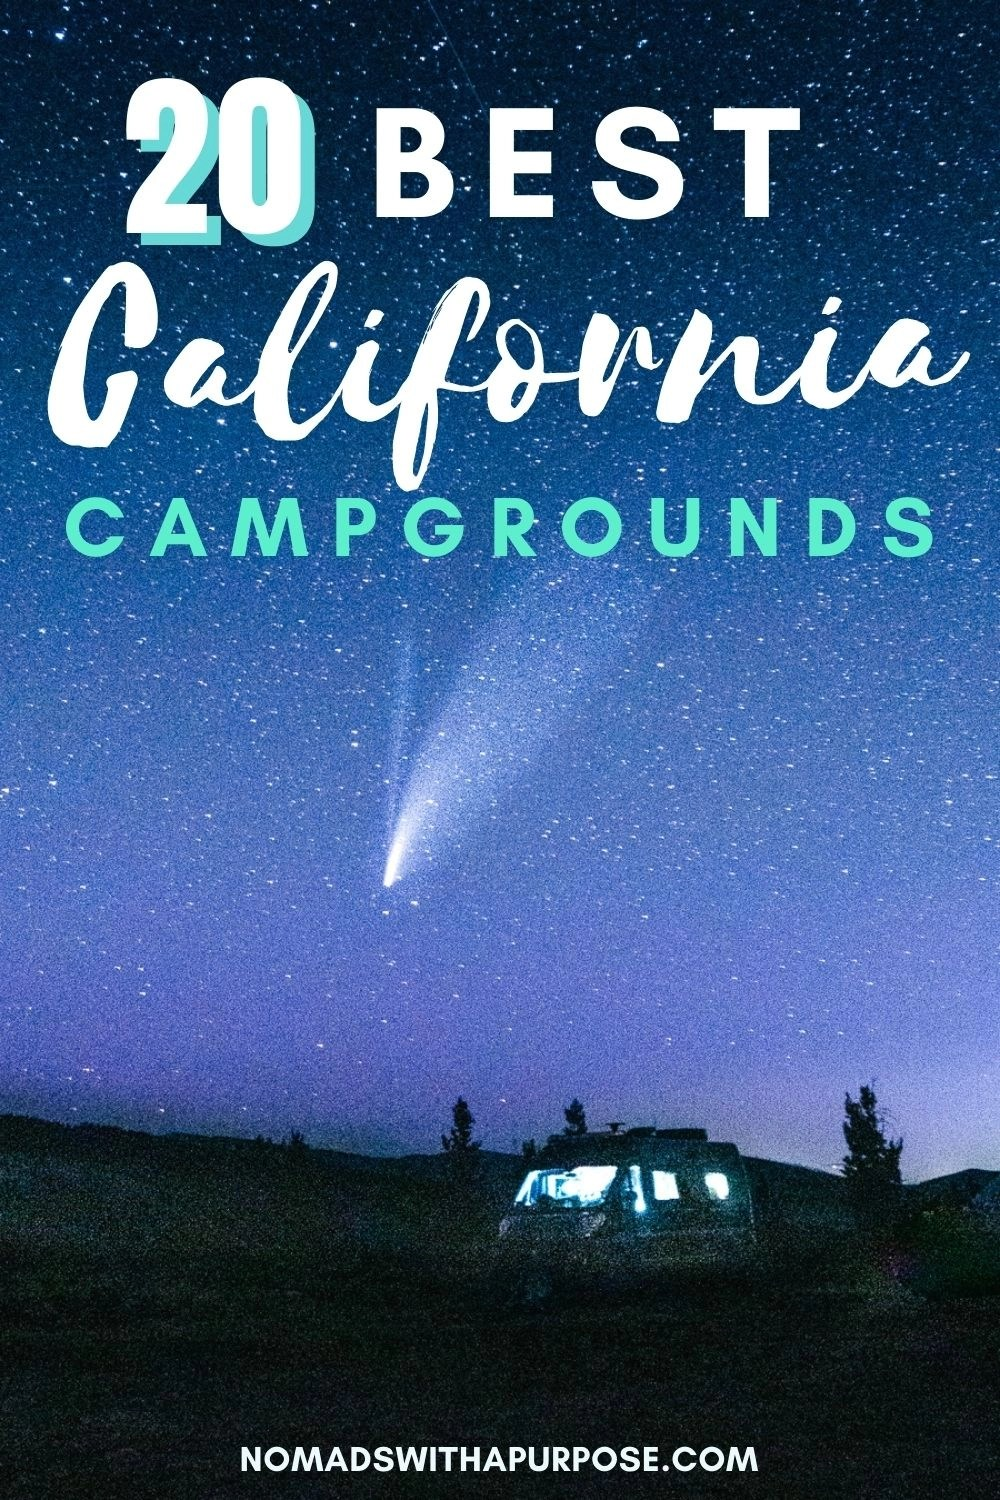 20 Best California Campgrounds